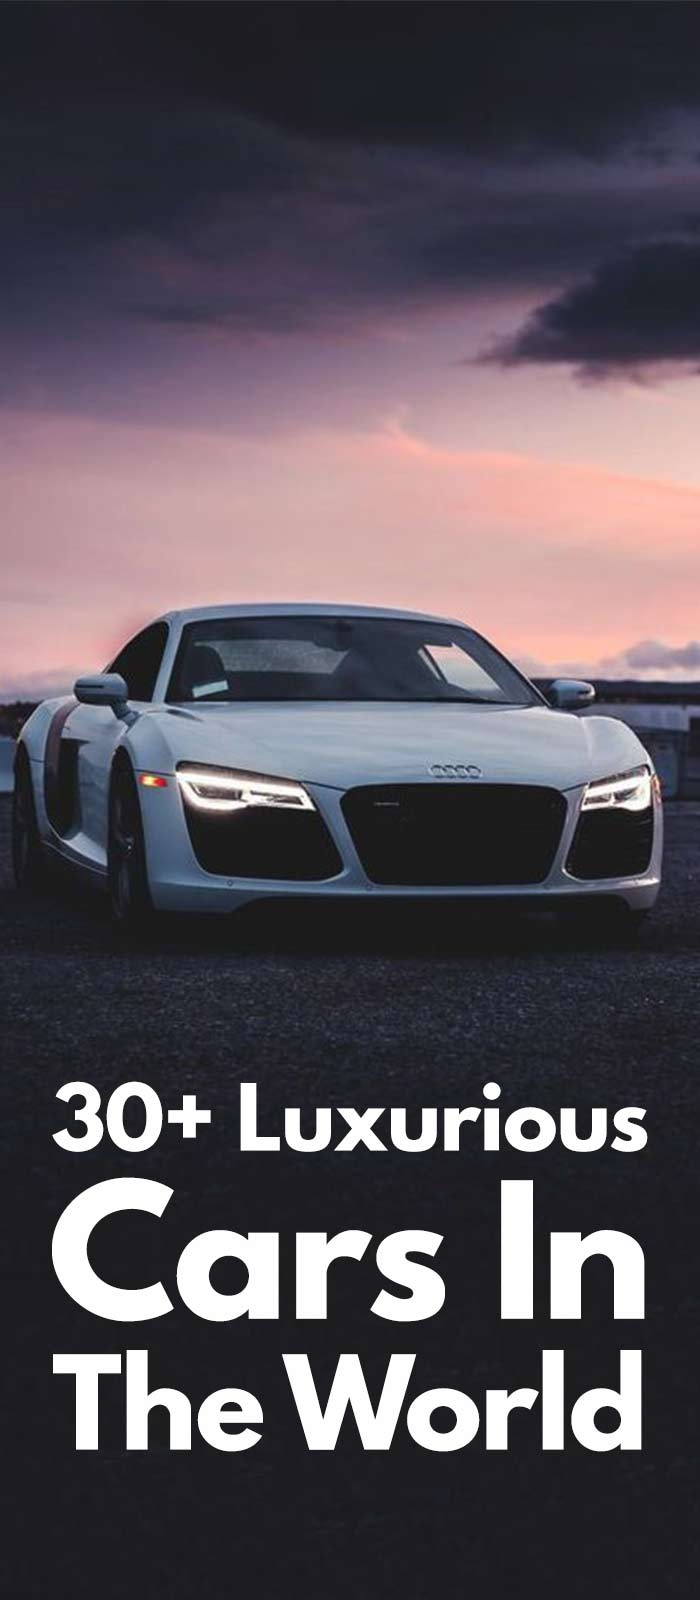 30+ Luxurious Cars In The World